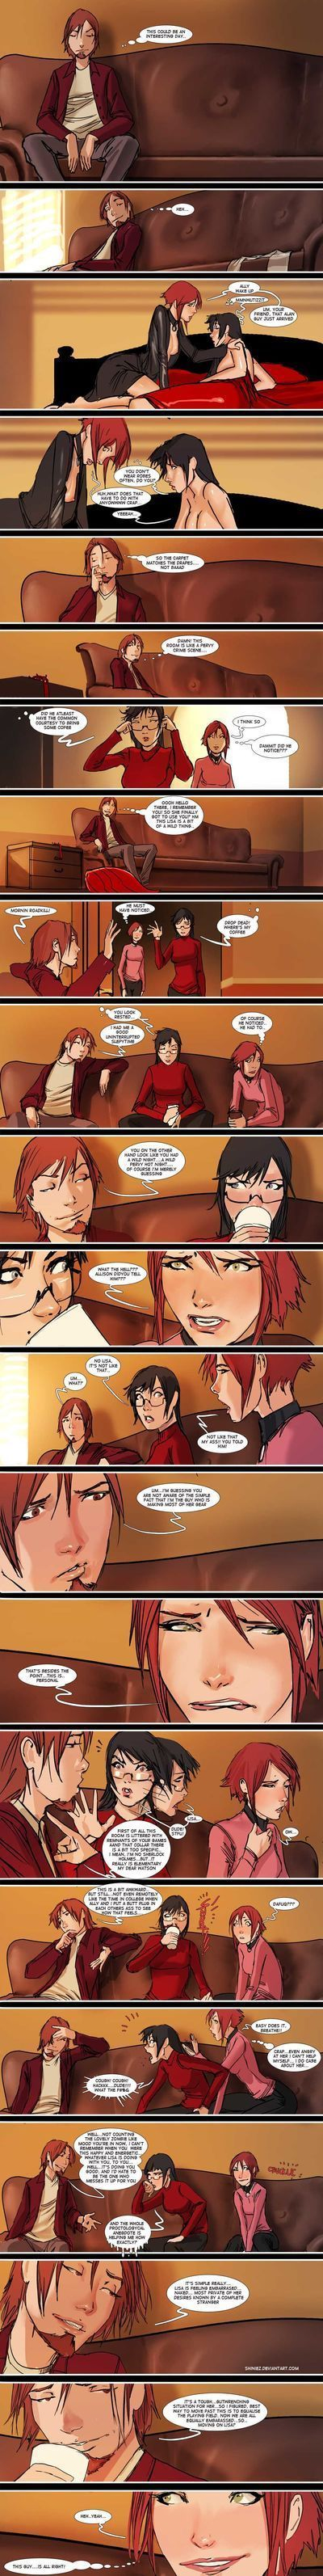 [Shiniez] Sunstone - Chapters 1-2-3-4-5(ongoing) - part 2